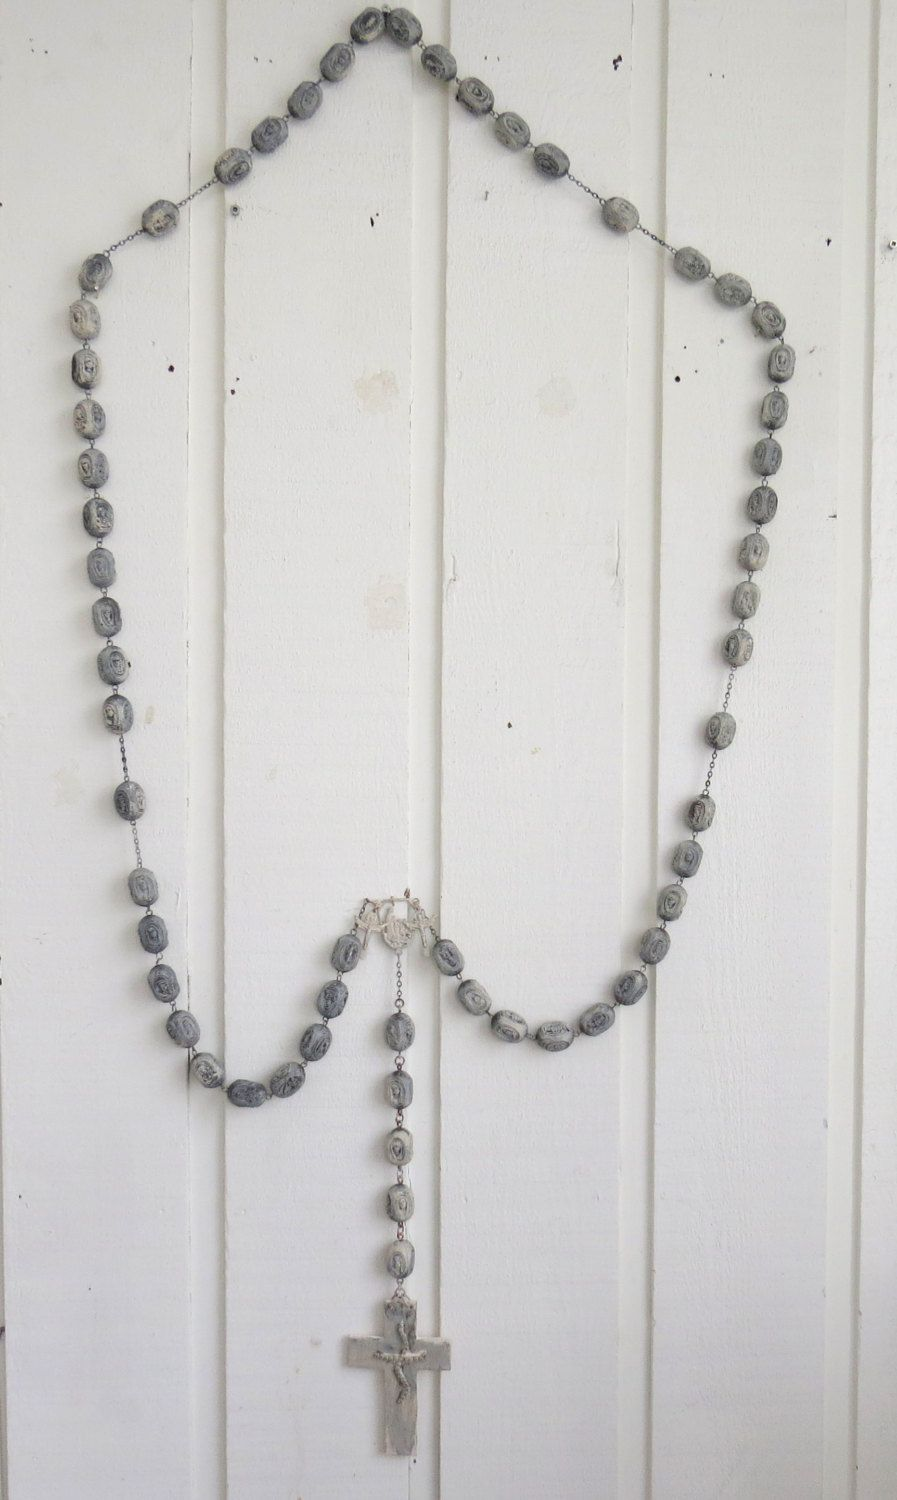 Large wall art hangings handmade from reclaimed religious decor